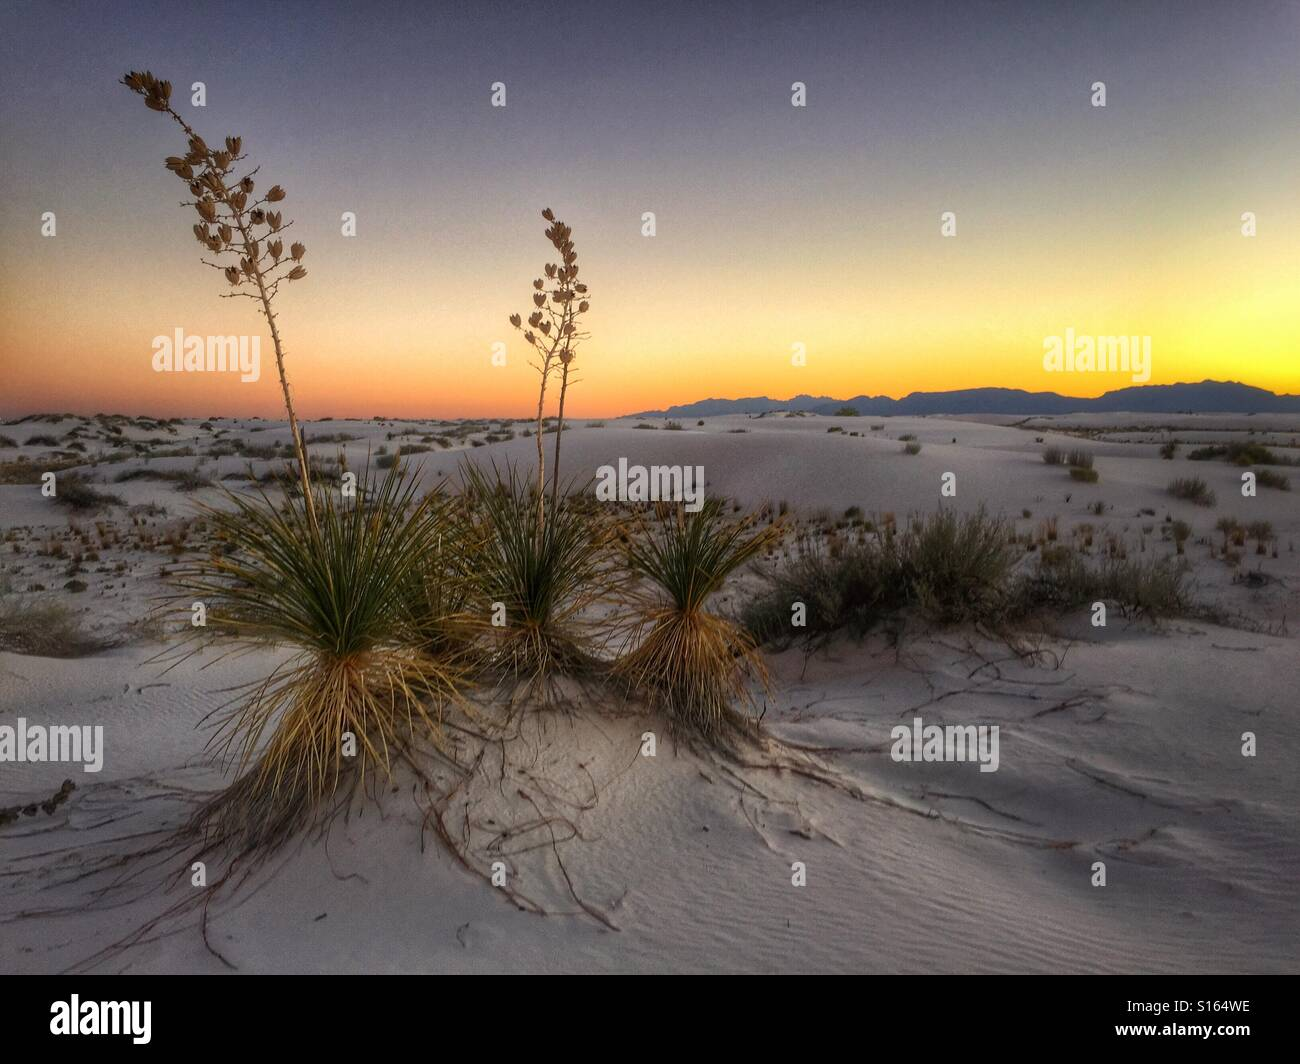 White Sands sunset - Stock Image